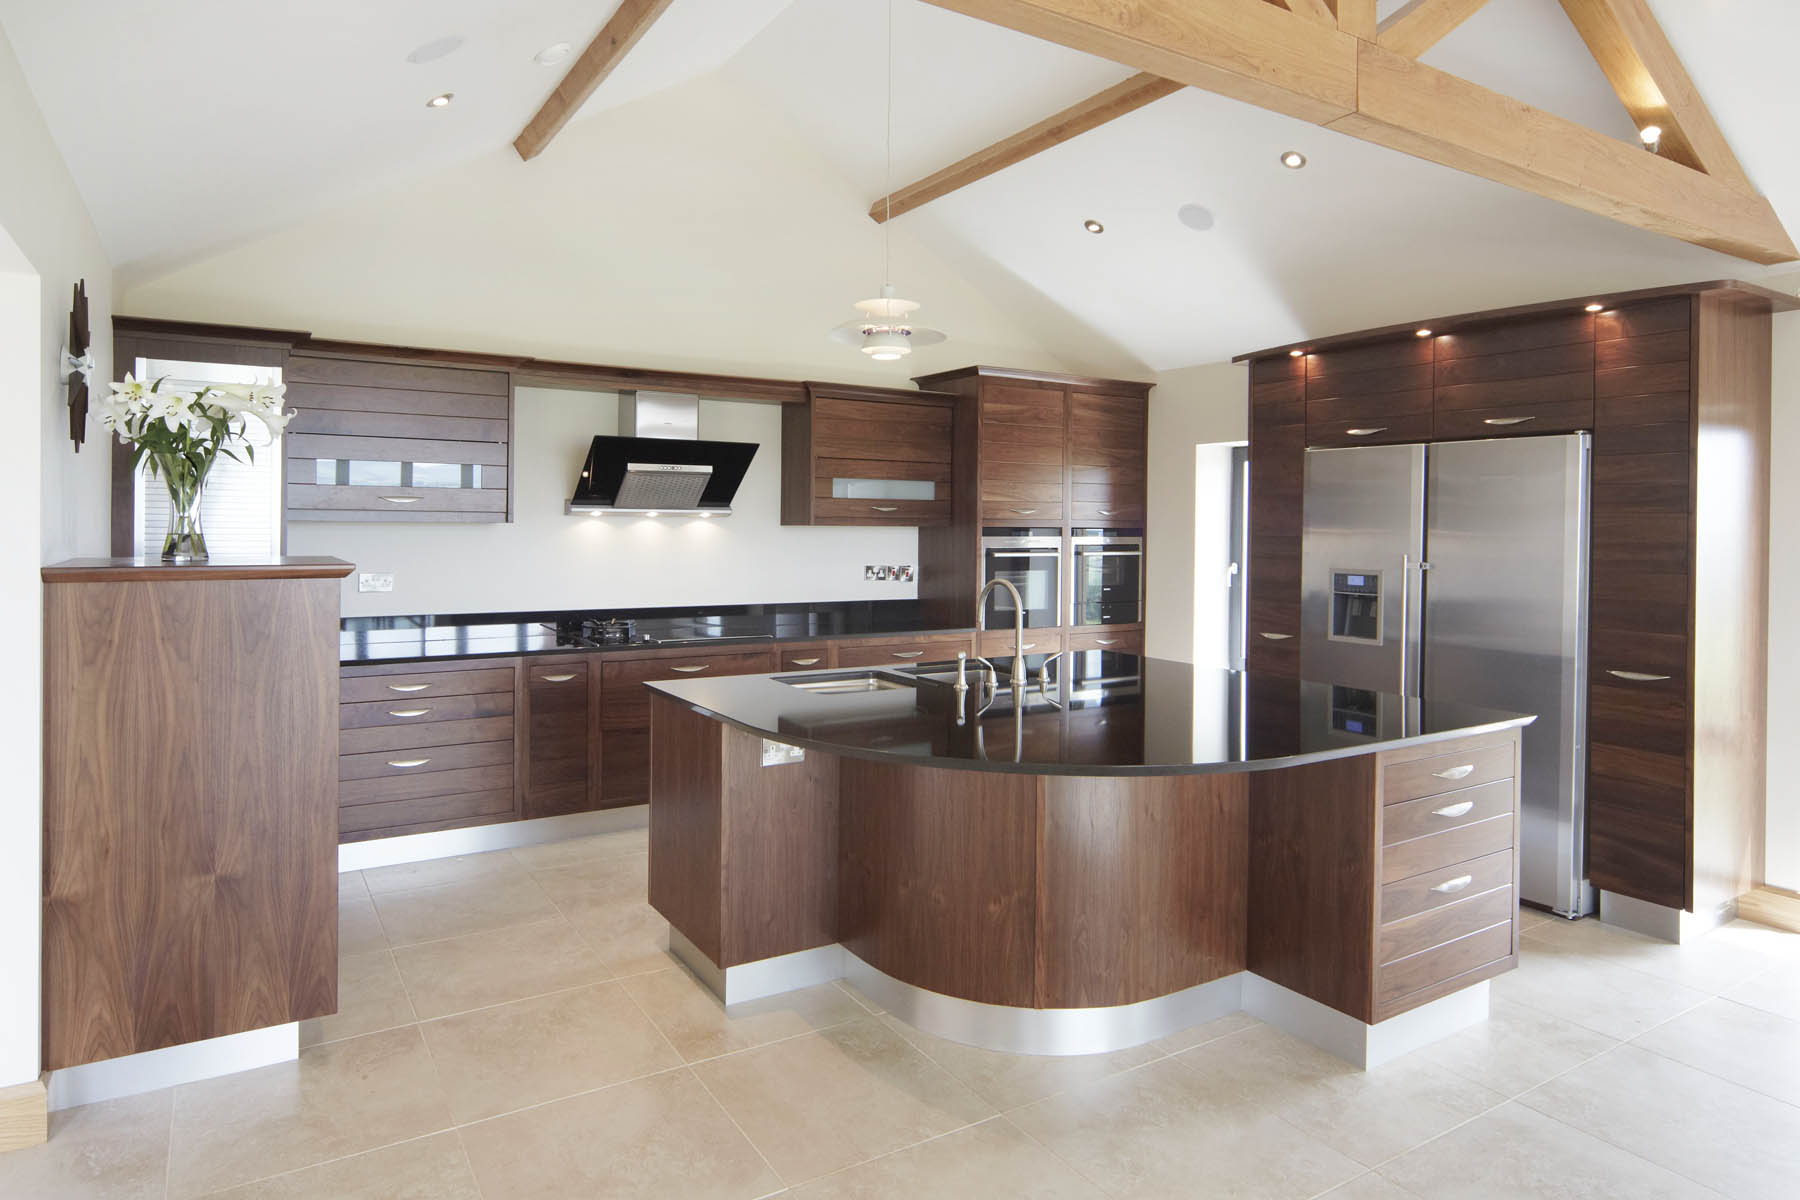 Kitchens california remodeling inc for Kitchen design ideas photos